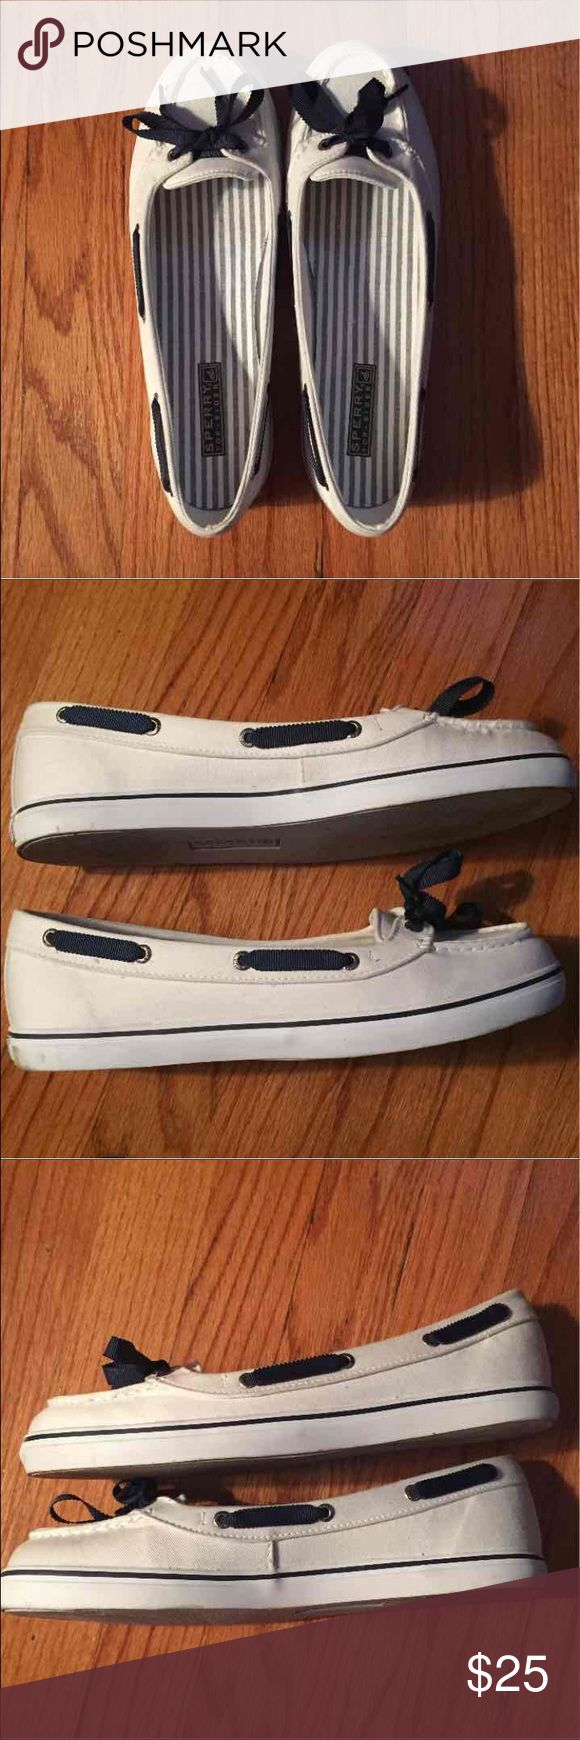 White Sperrys with navy blue ribbon Worn only a few times Sperry Shoes Flats & Loafers